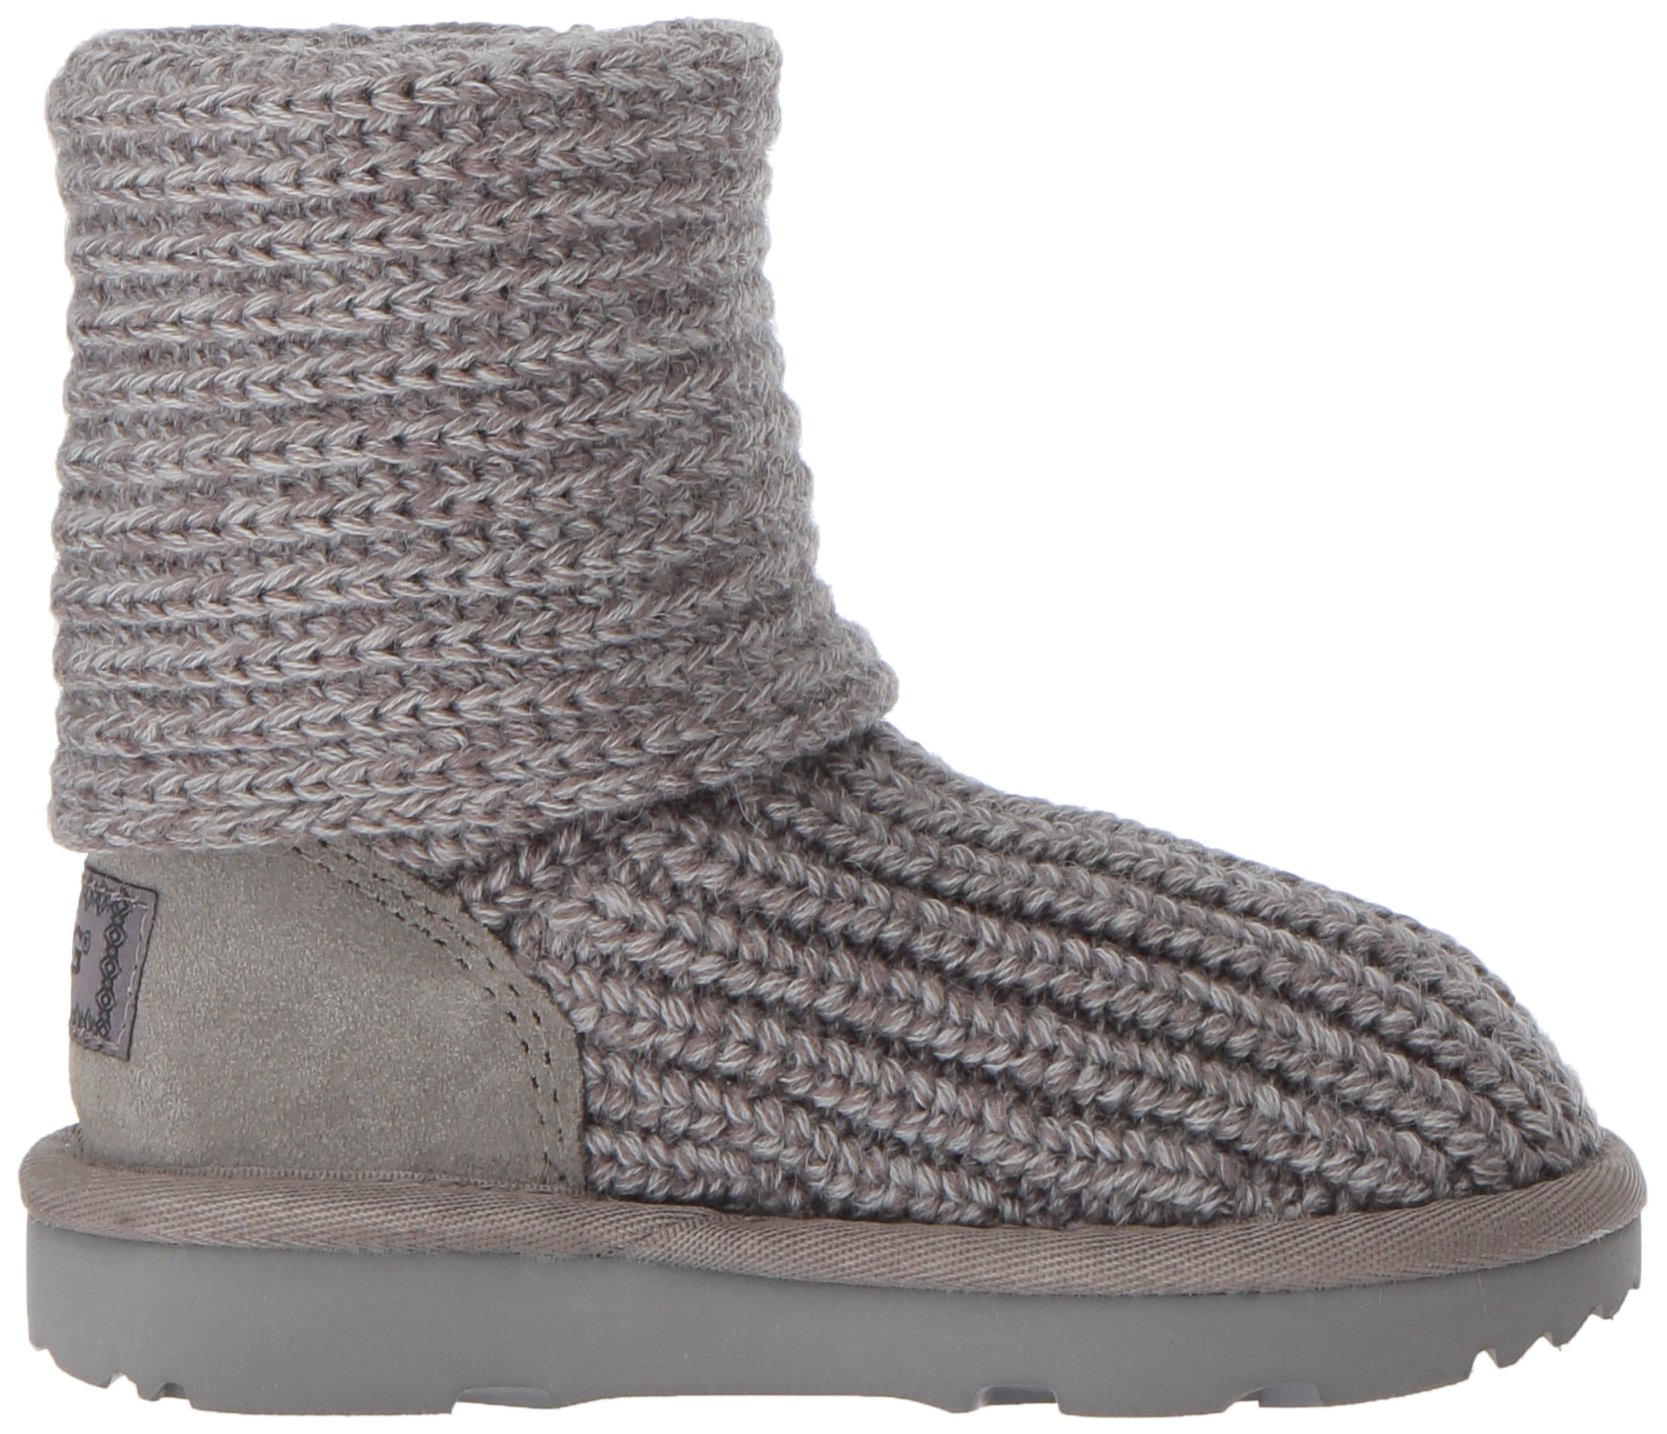 UGG Girls K Cardy II Pull-on Boot, Grey, 13 M US Little Kid by UGG (Image #7)